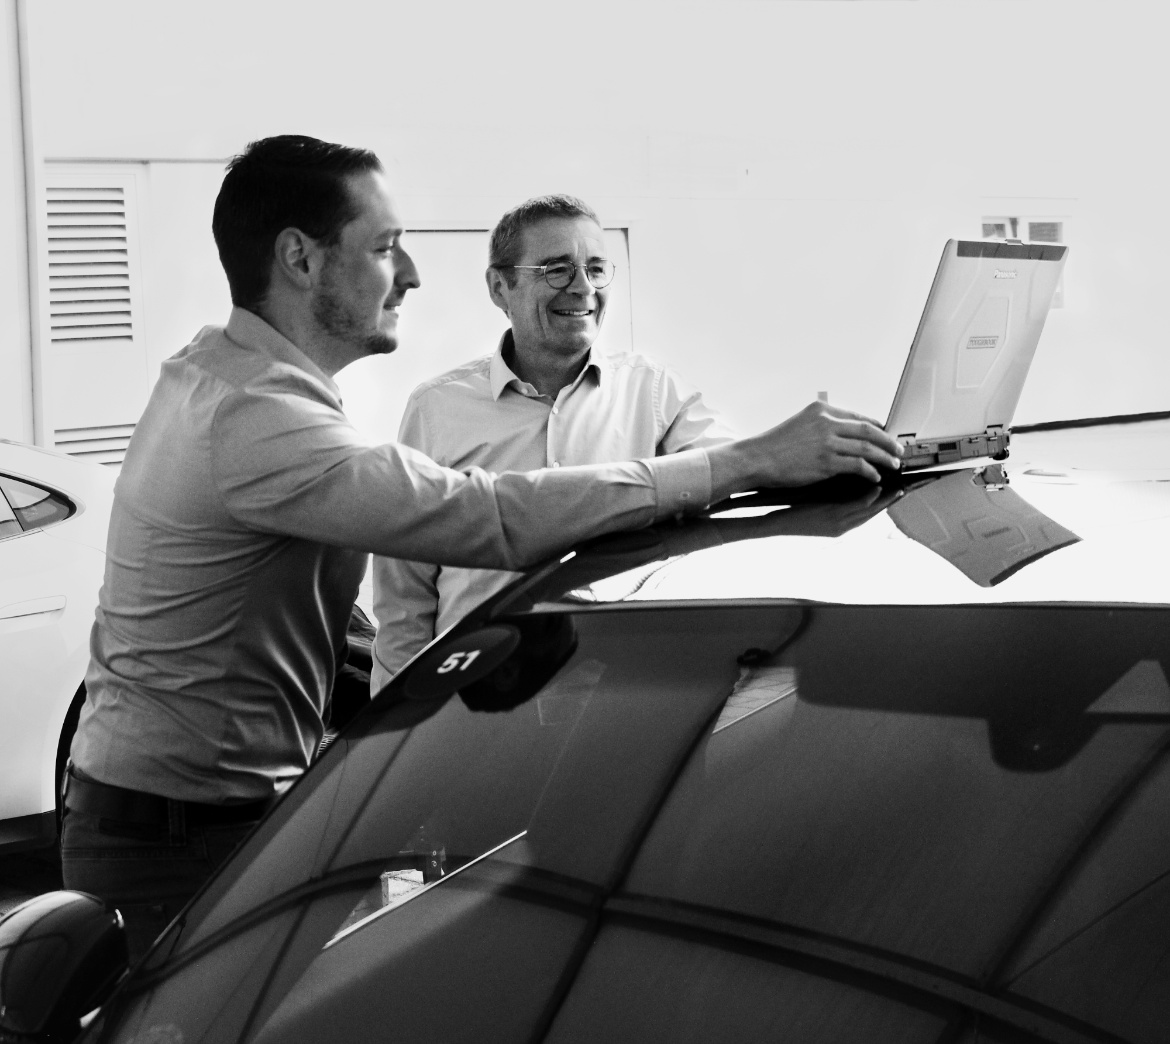 Peter Schäfer and another man are looking at a laptop standing on the roof of a car.